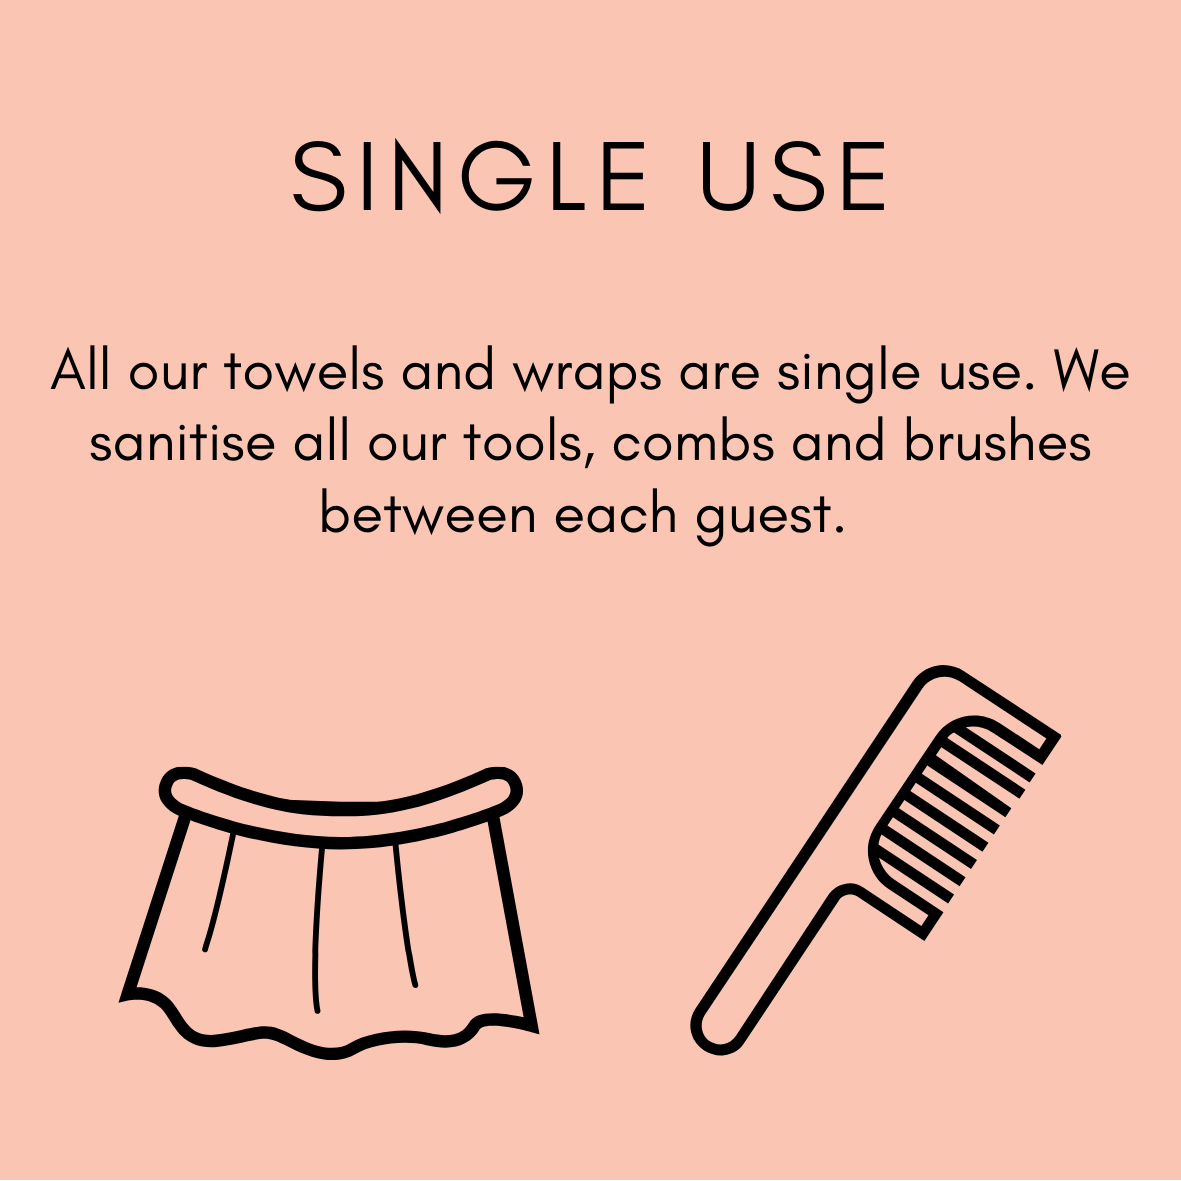 All our towels and wraps are single use per guest at Zucci Hairdressing